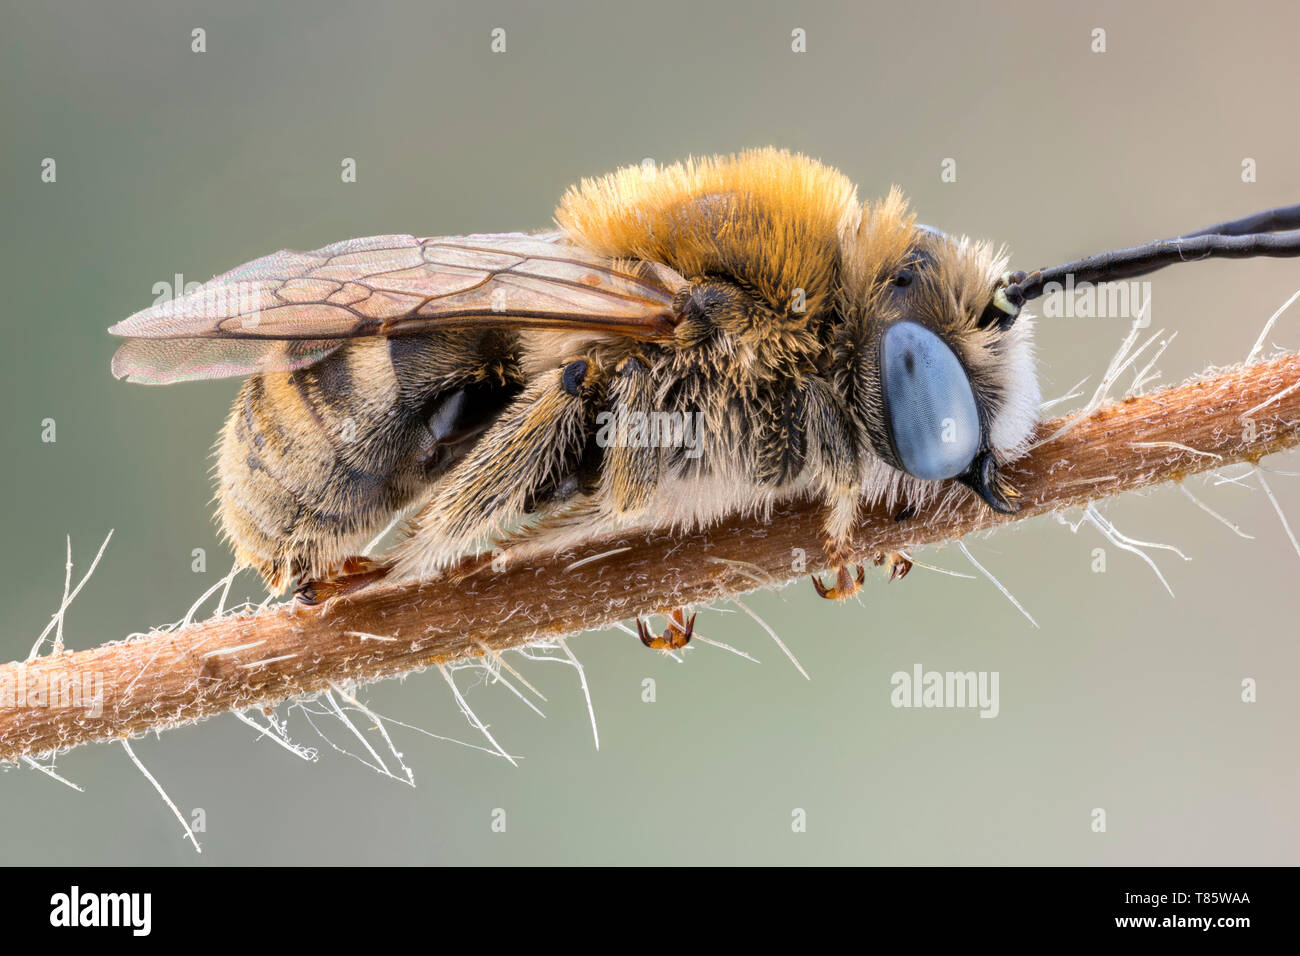 Long horned bee - Stock Image